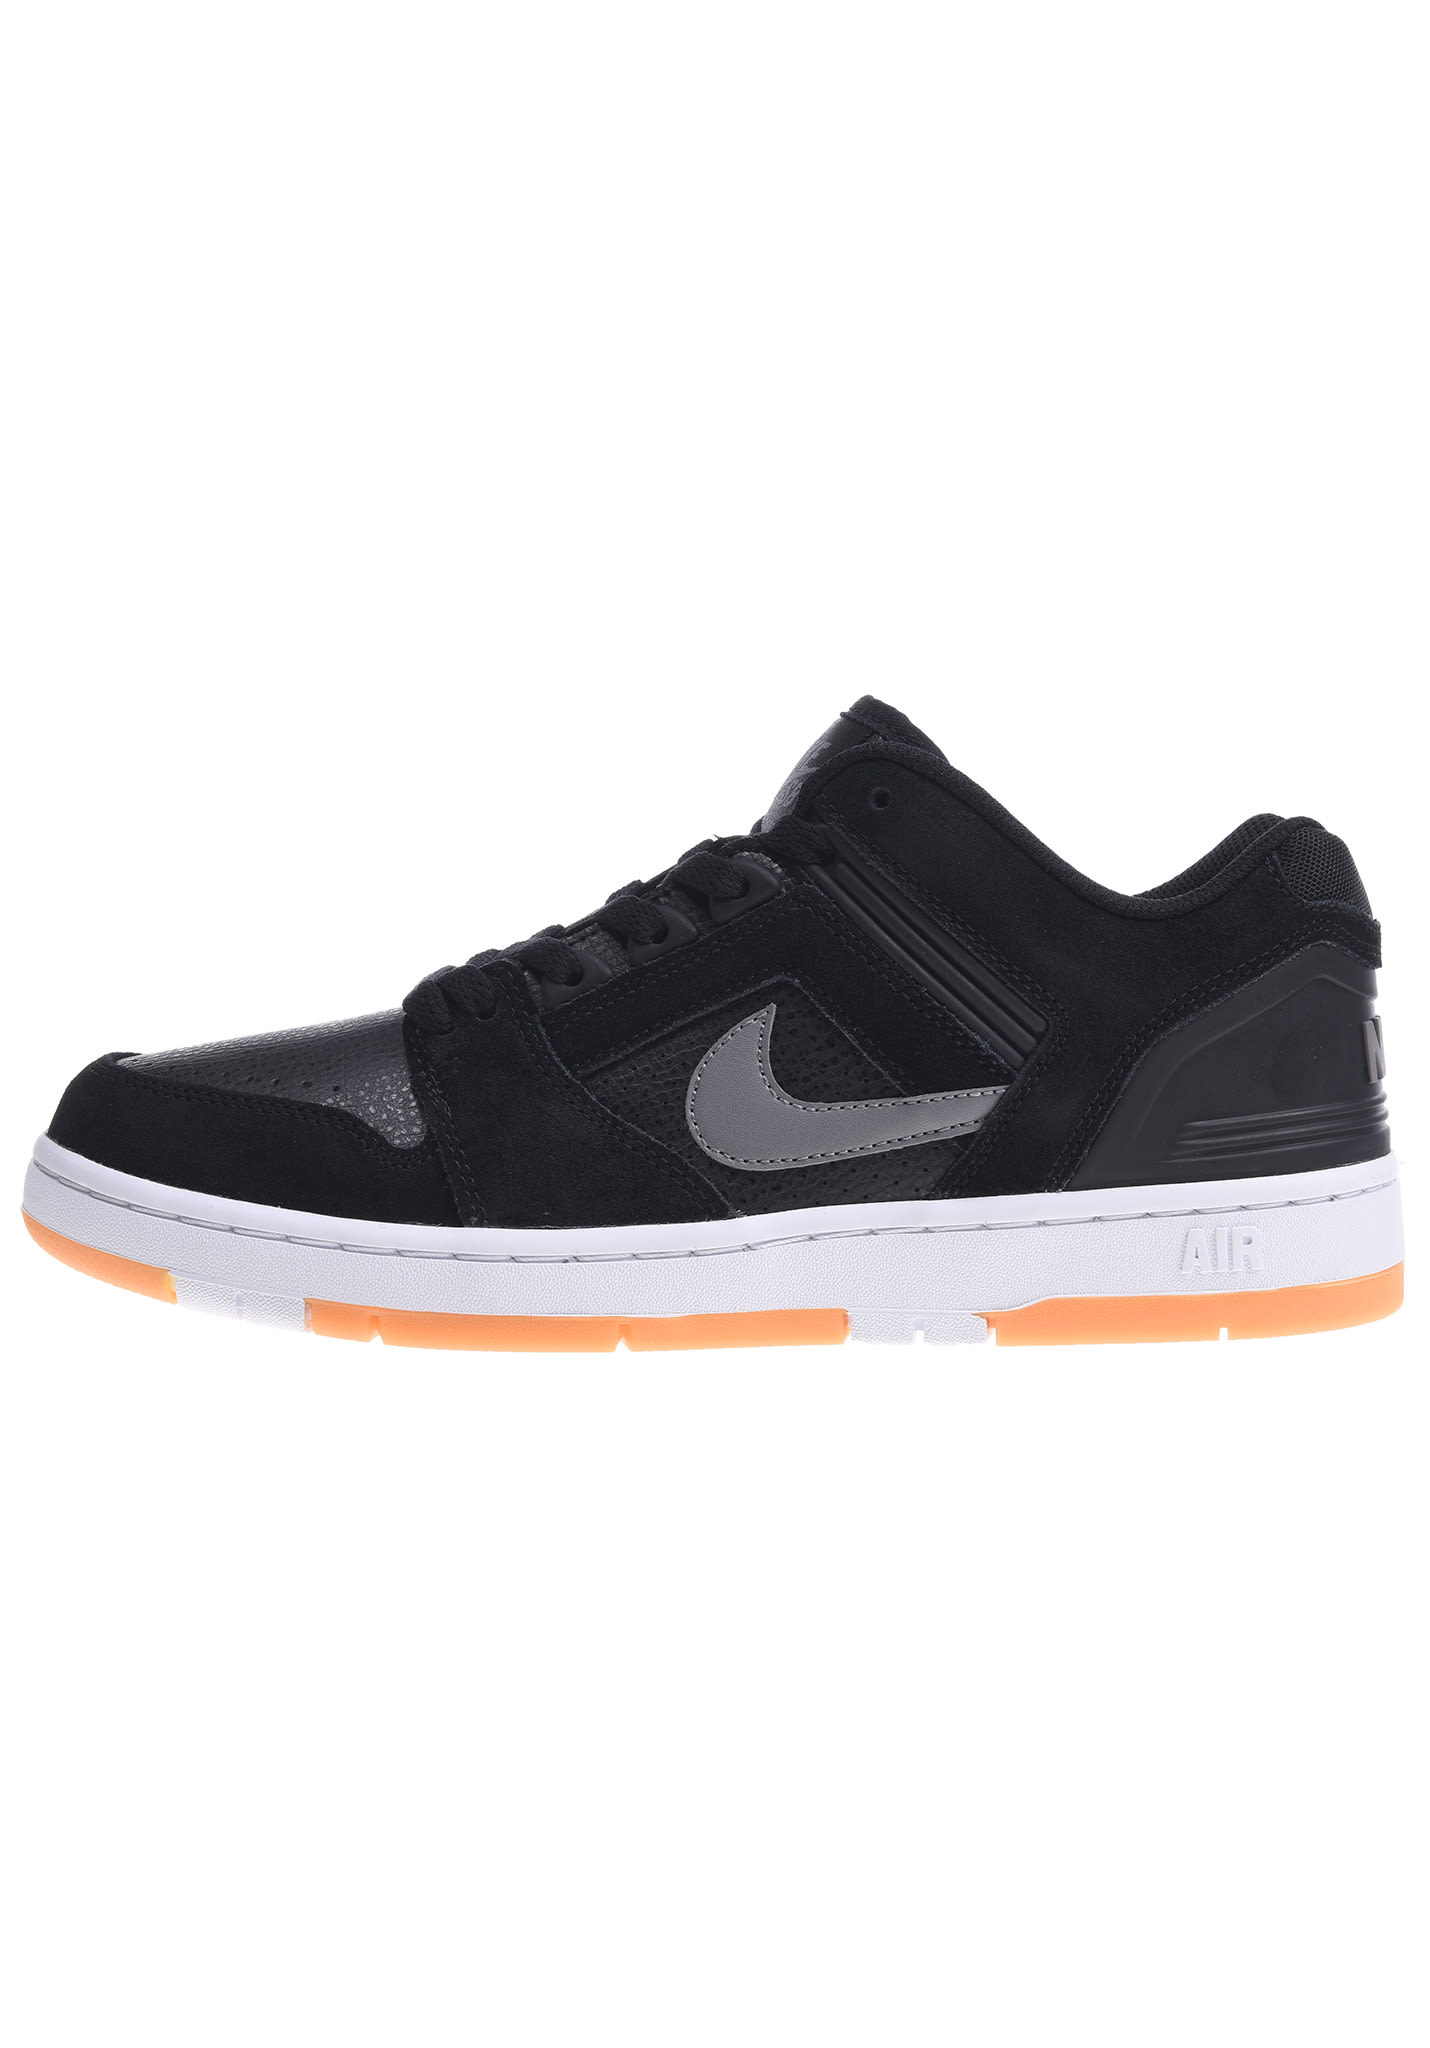 official photos 9ecf1 a0251 NIKE SB Air Force II Low - Sneakers for Men - Black - Planet Sports